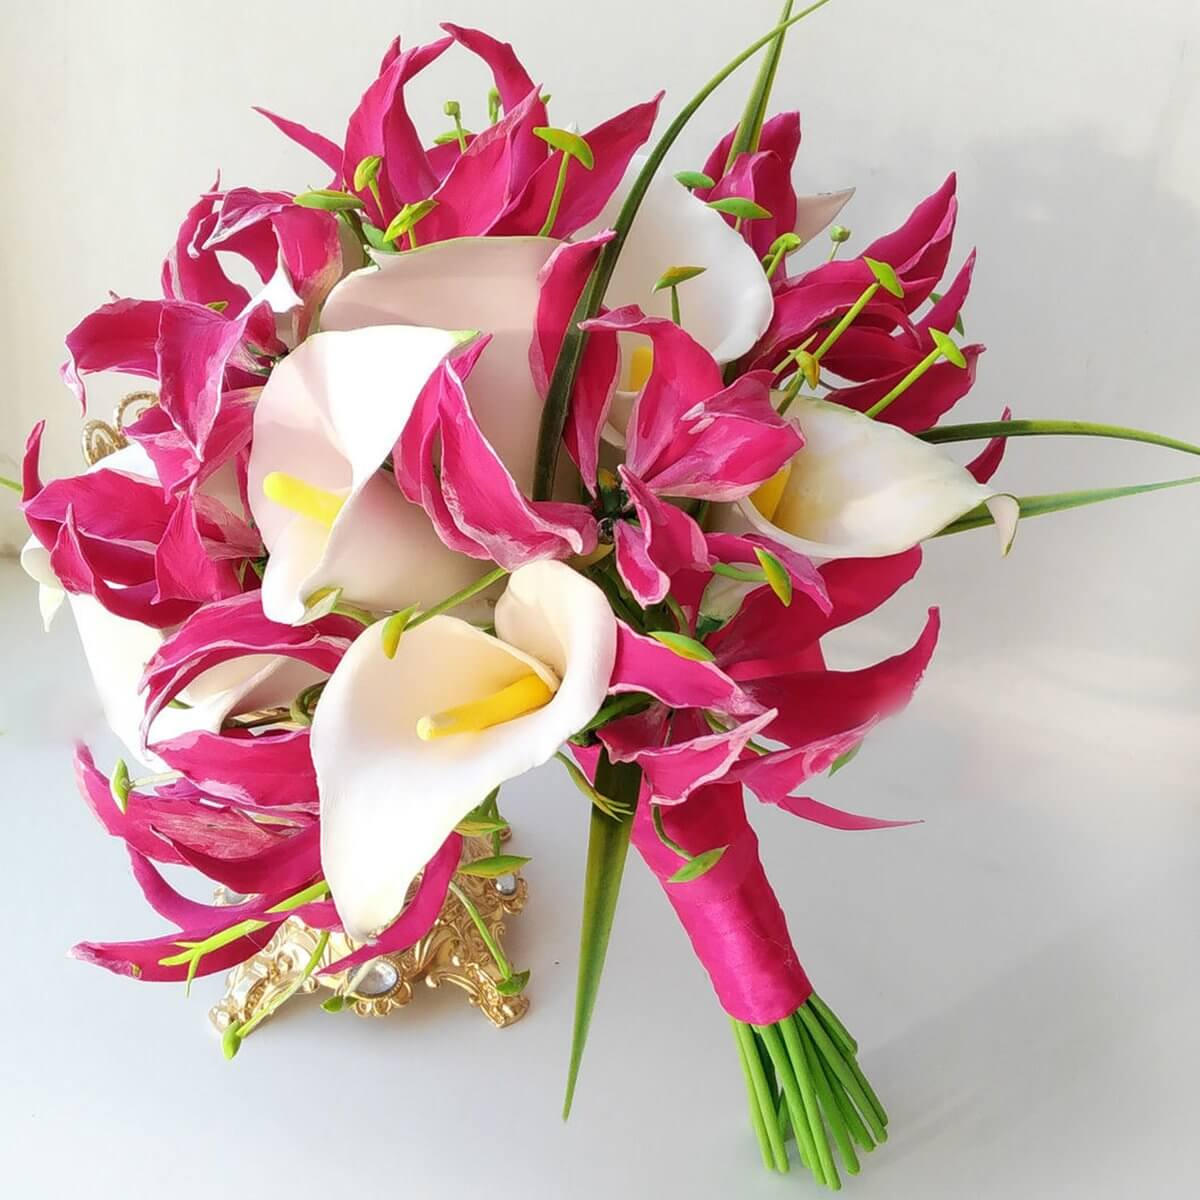 Flame And Calla Lily Bridal Bouquet - Handmade With Love   Oriflowers